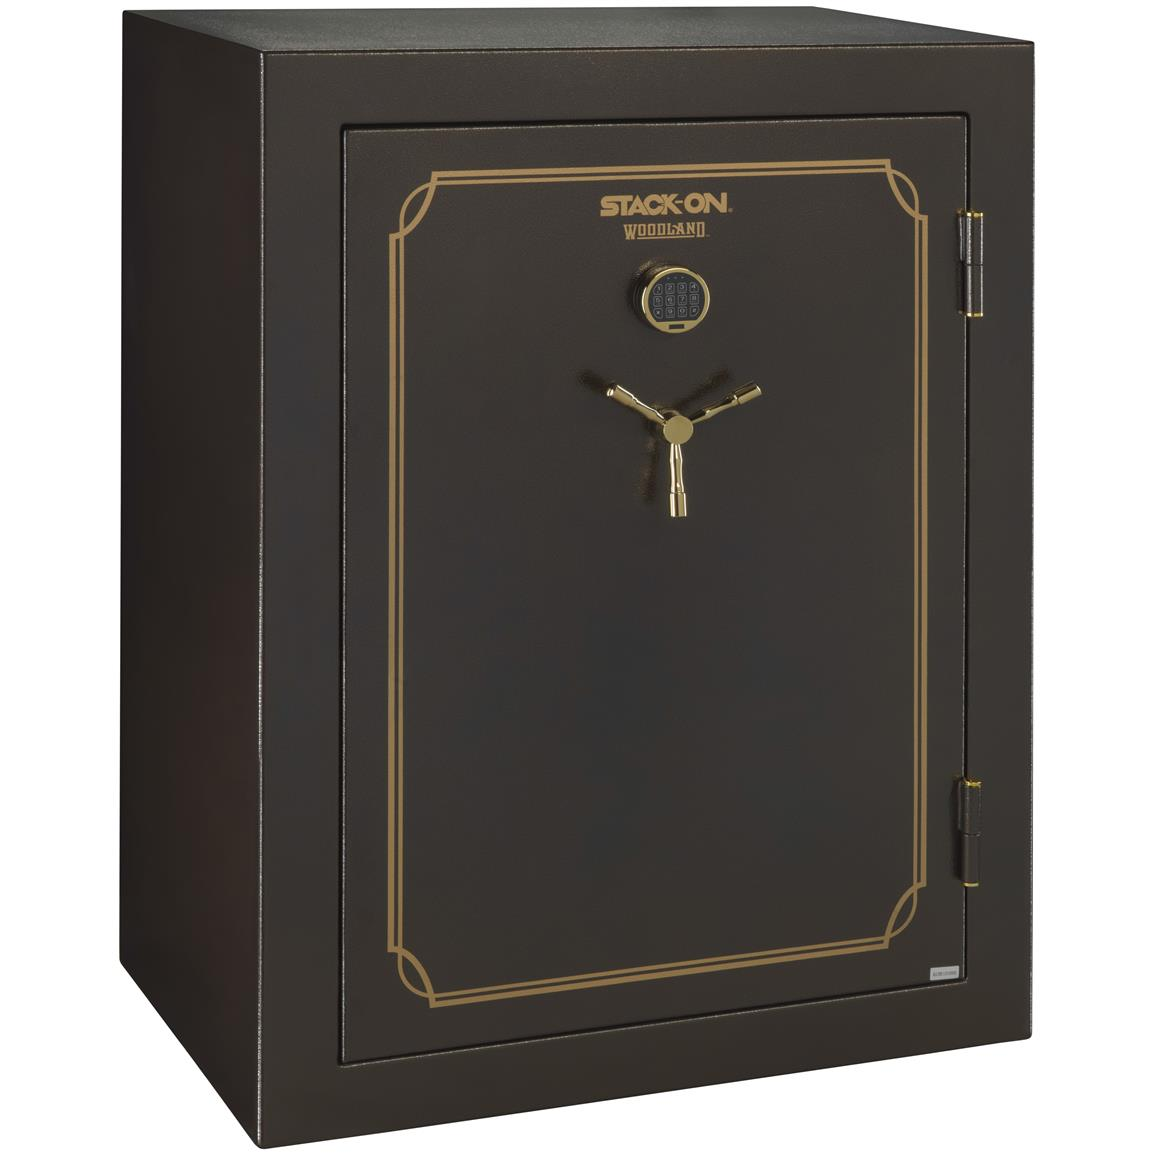 Stack-On Woodland Electronic Lock 51-69 Gun Safe